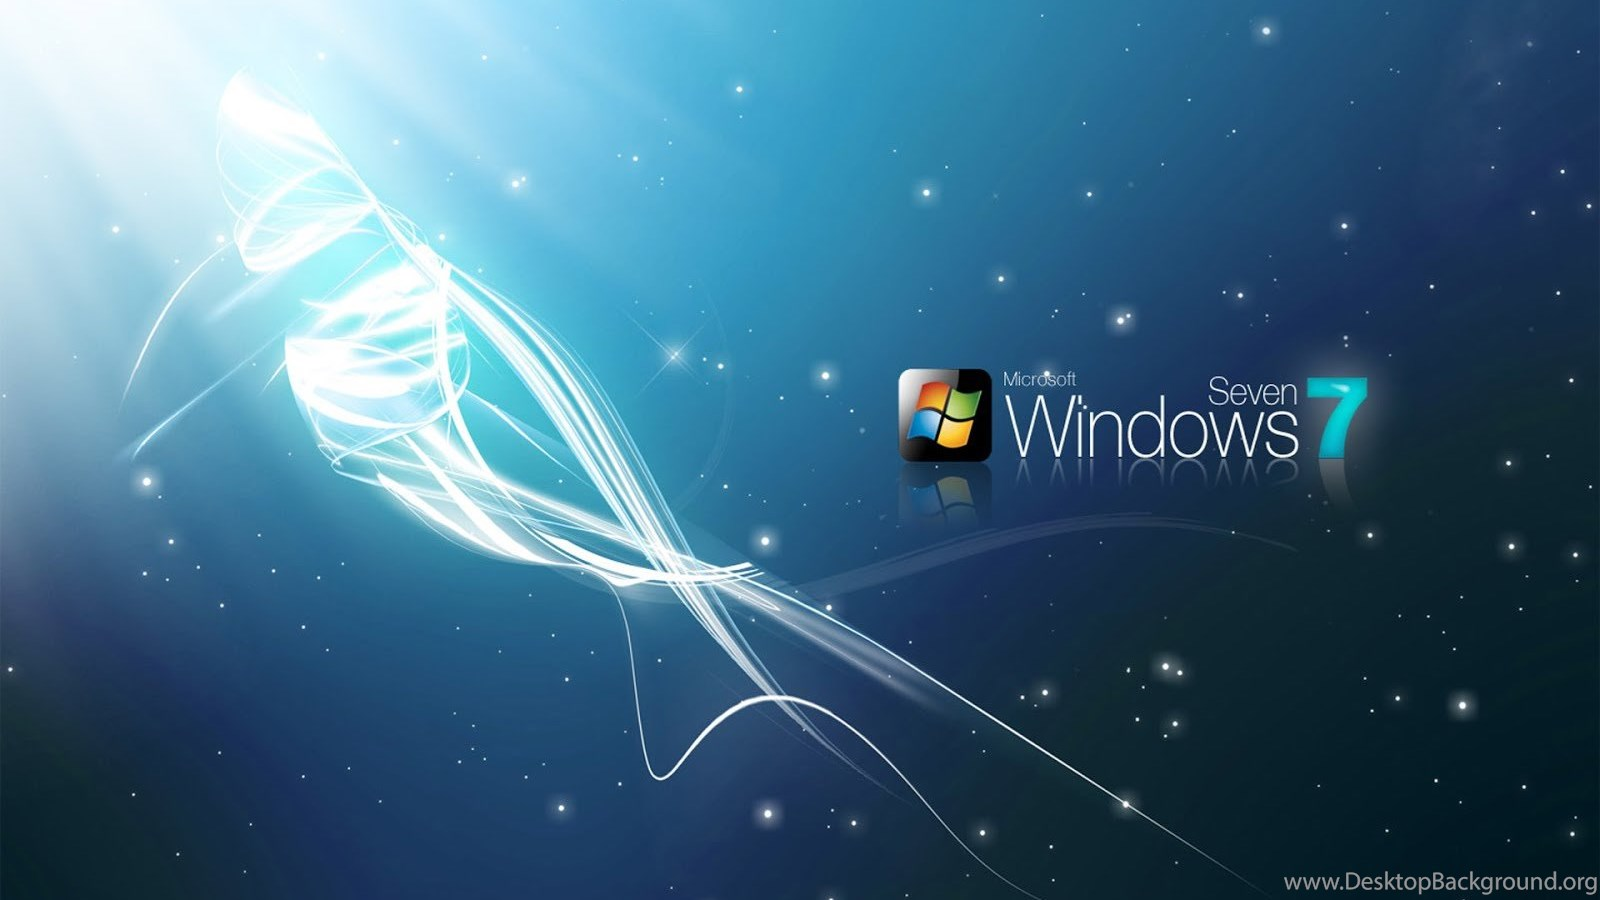 Free Animated Wallpapers Windows 7 Desktop